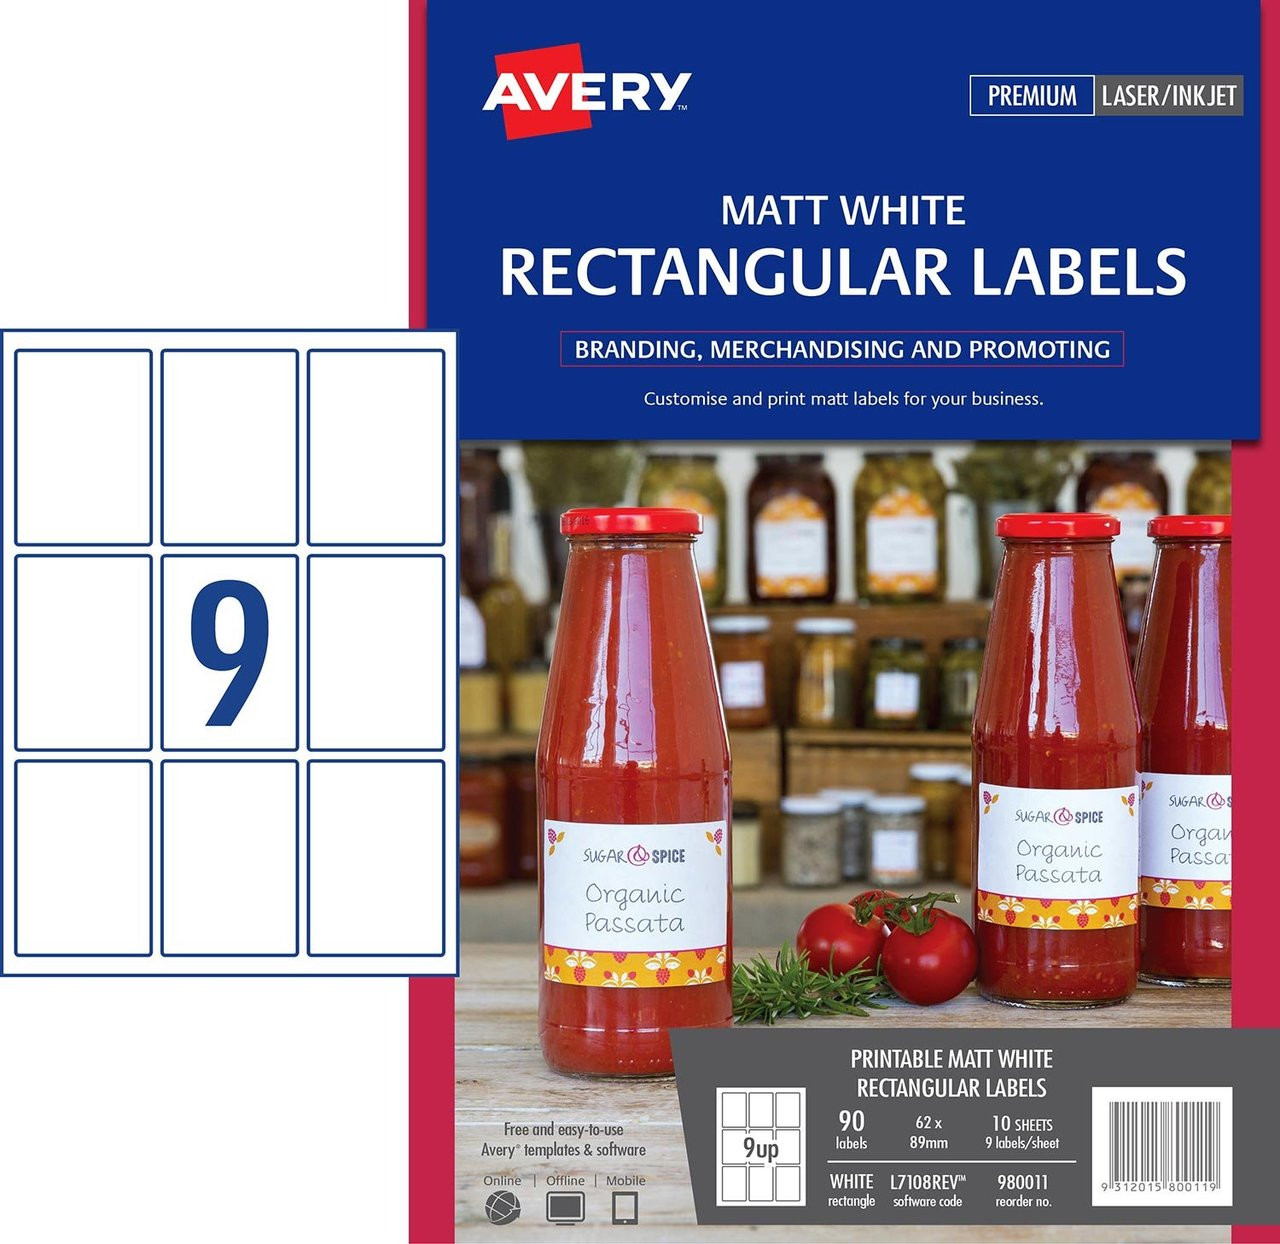 f3e0b92a798f AVERY 980011 WHITE RECTANGULAR REMOVABLE PRODUCT LABELS - L7108REV -  90/PACK - 62 X 89 MM |9UP